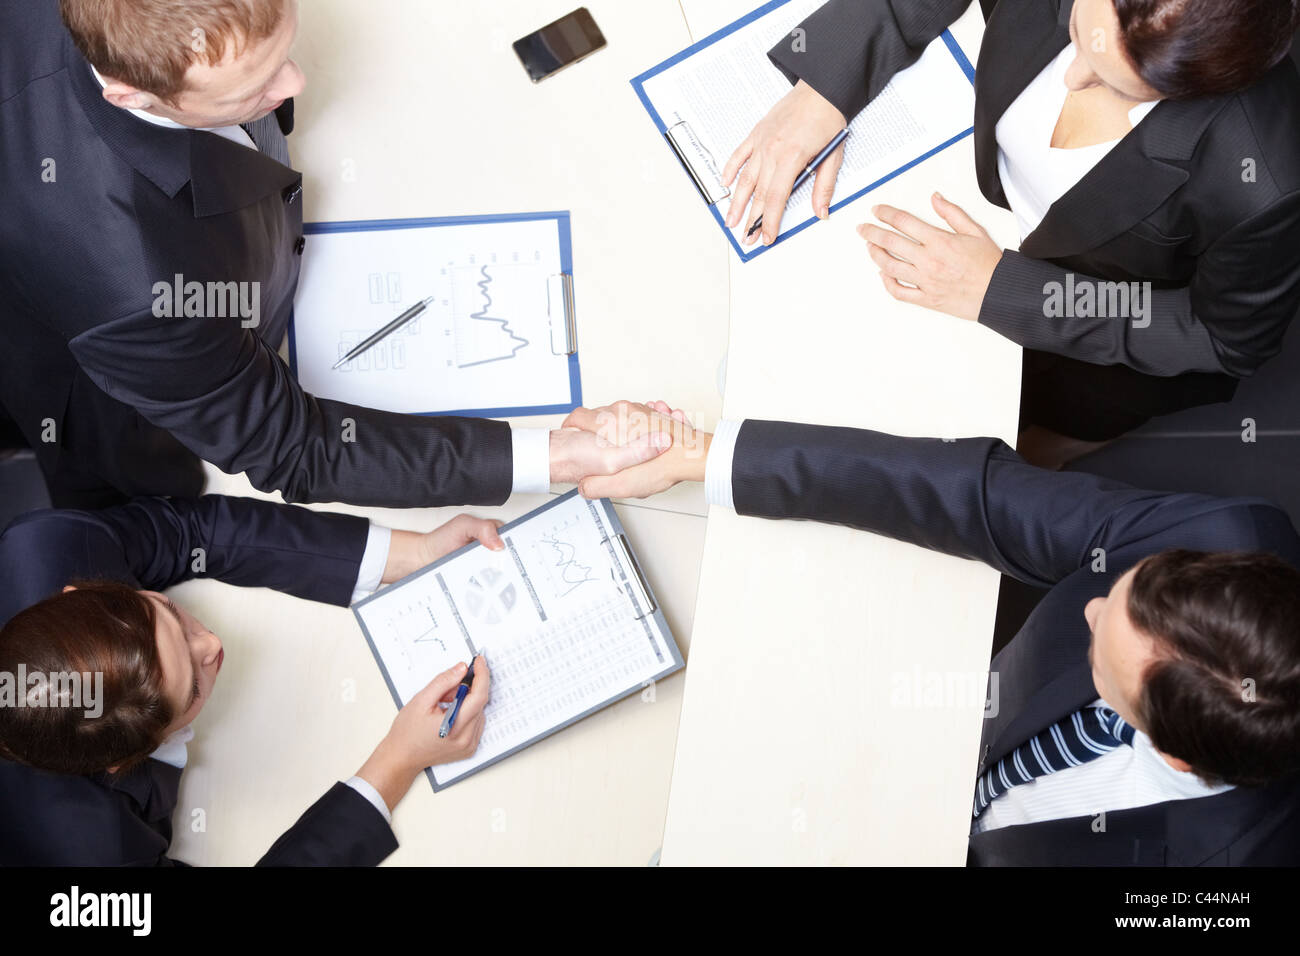 Above view of business partners handshaking after signing contract - Stock Image